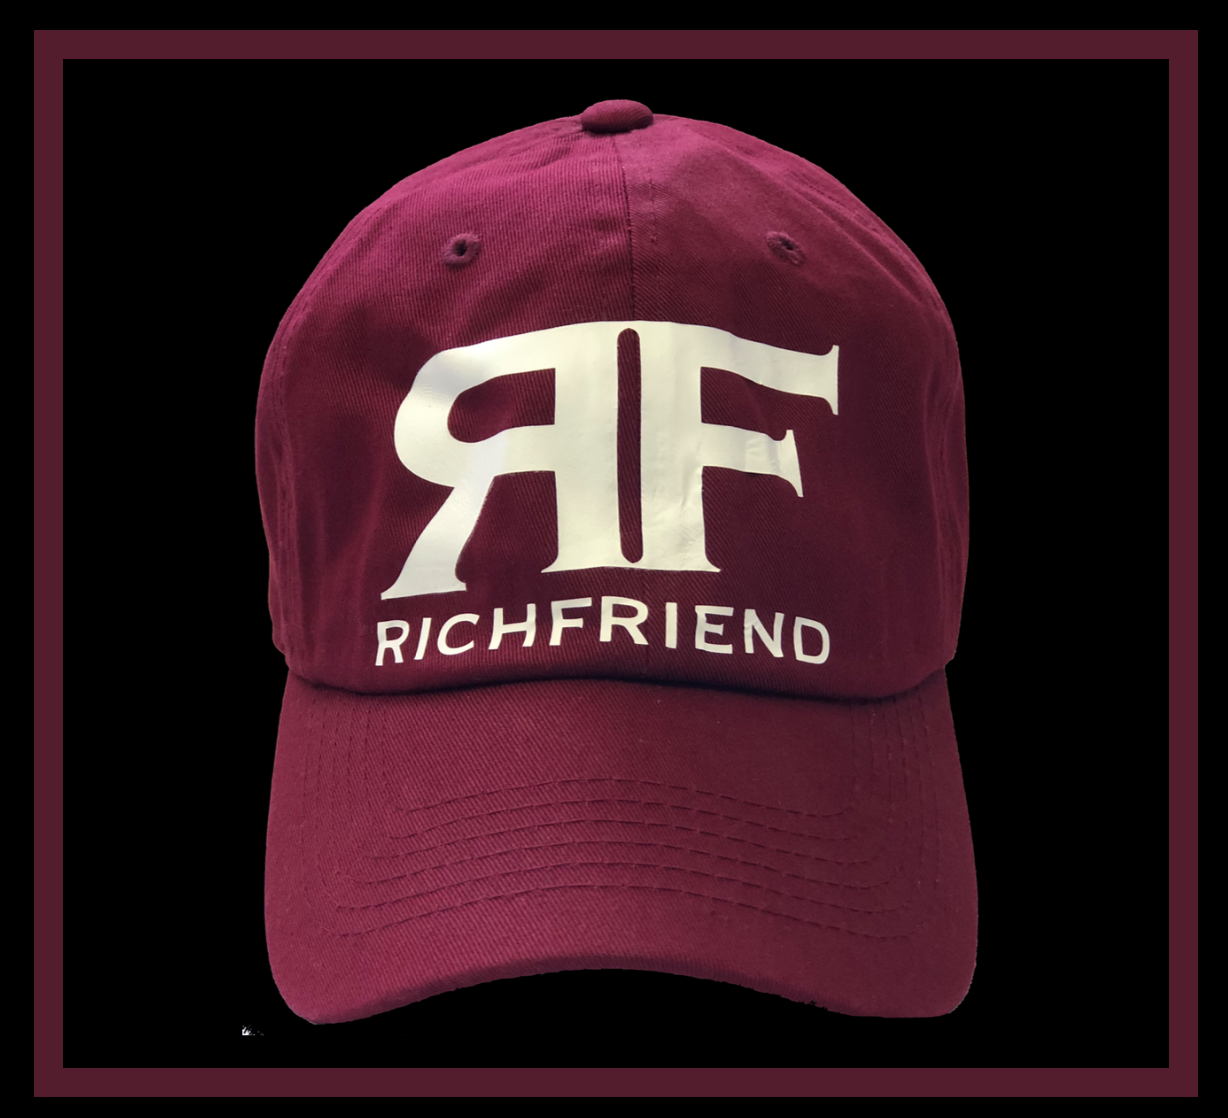 RF Richfriend